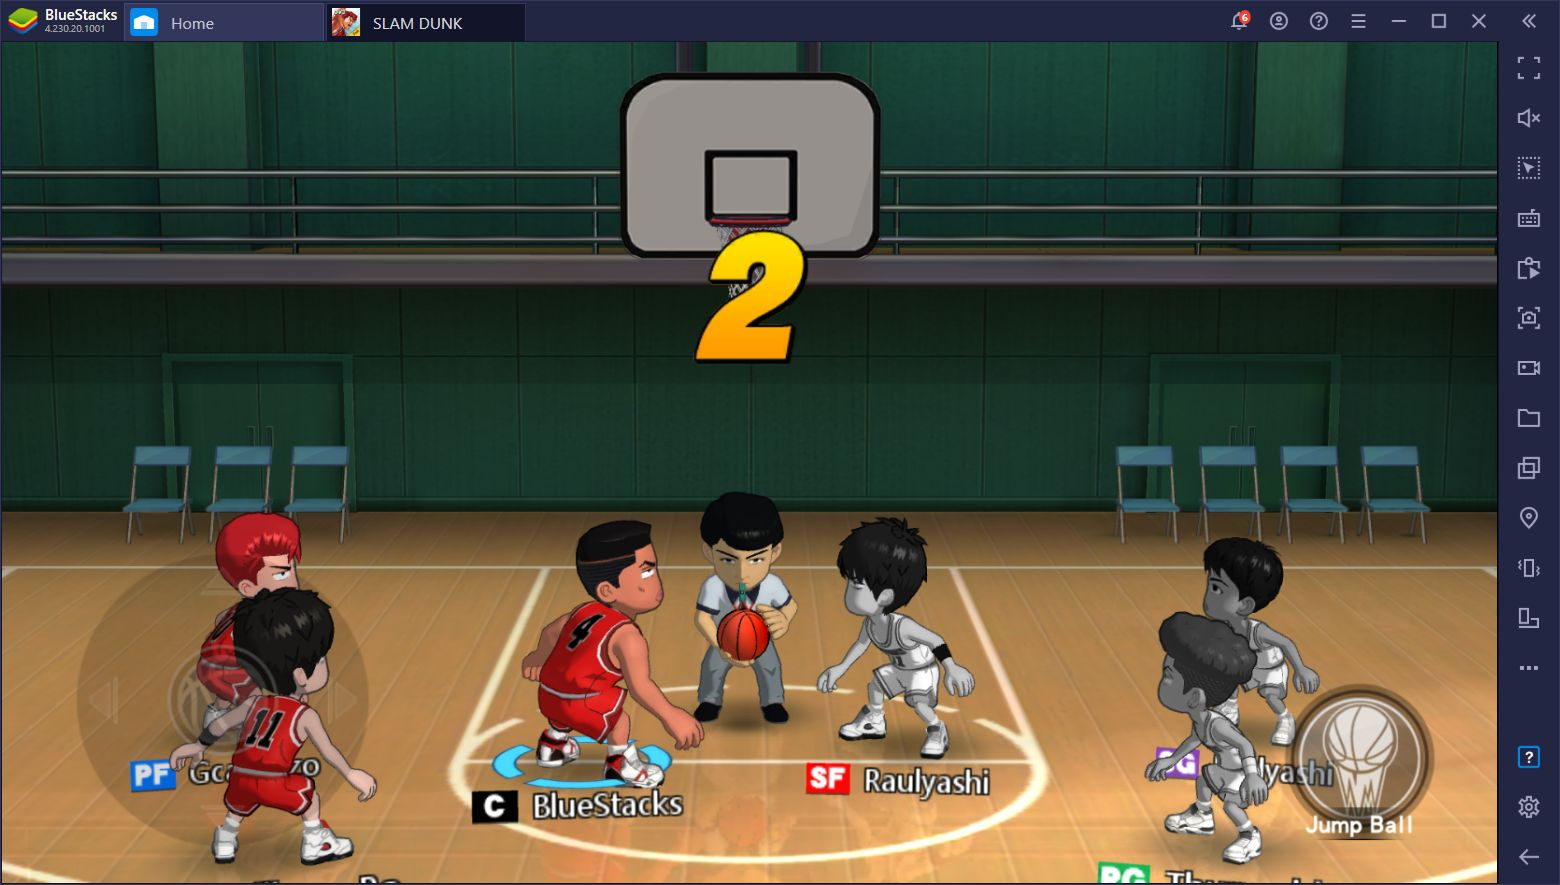 Slam Dunk on PC – Win All Your Matches With BlueStacks